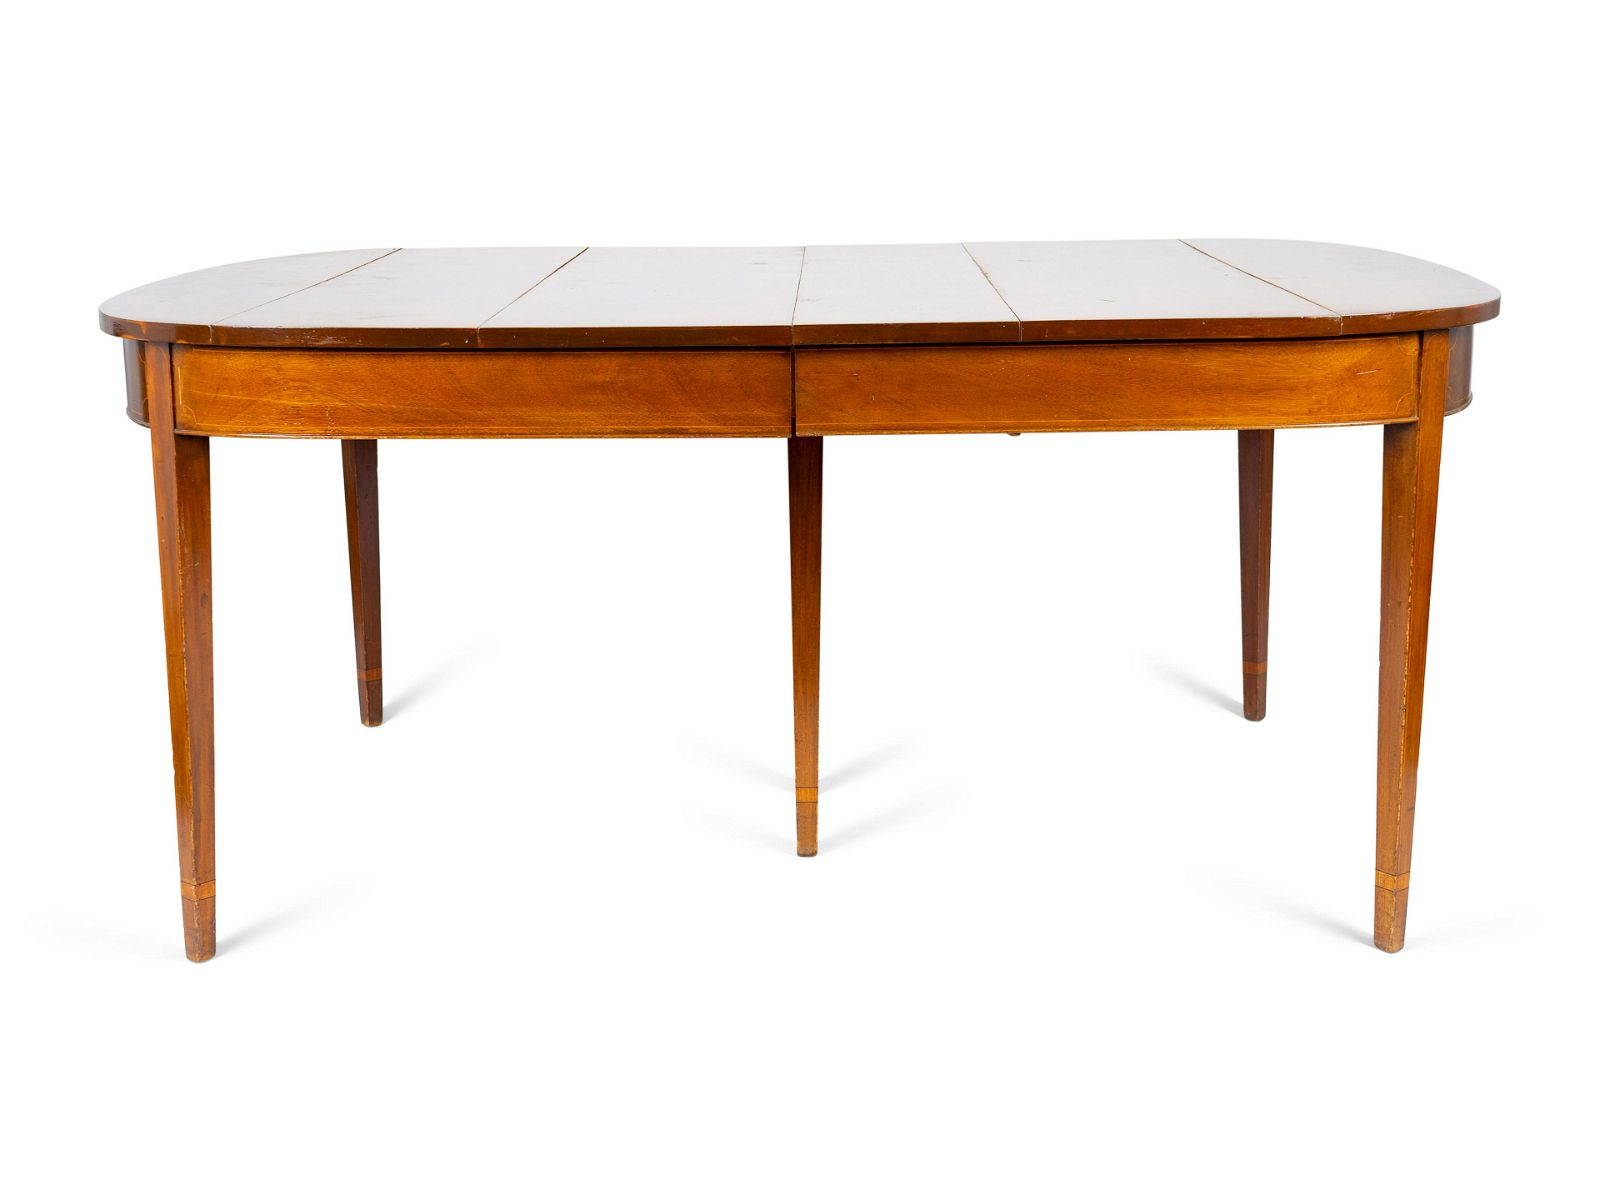 A George III Style Mahogany D-end Dining Table Height